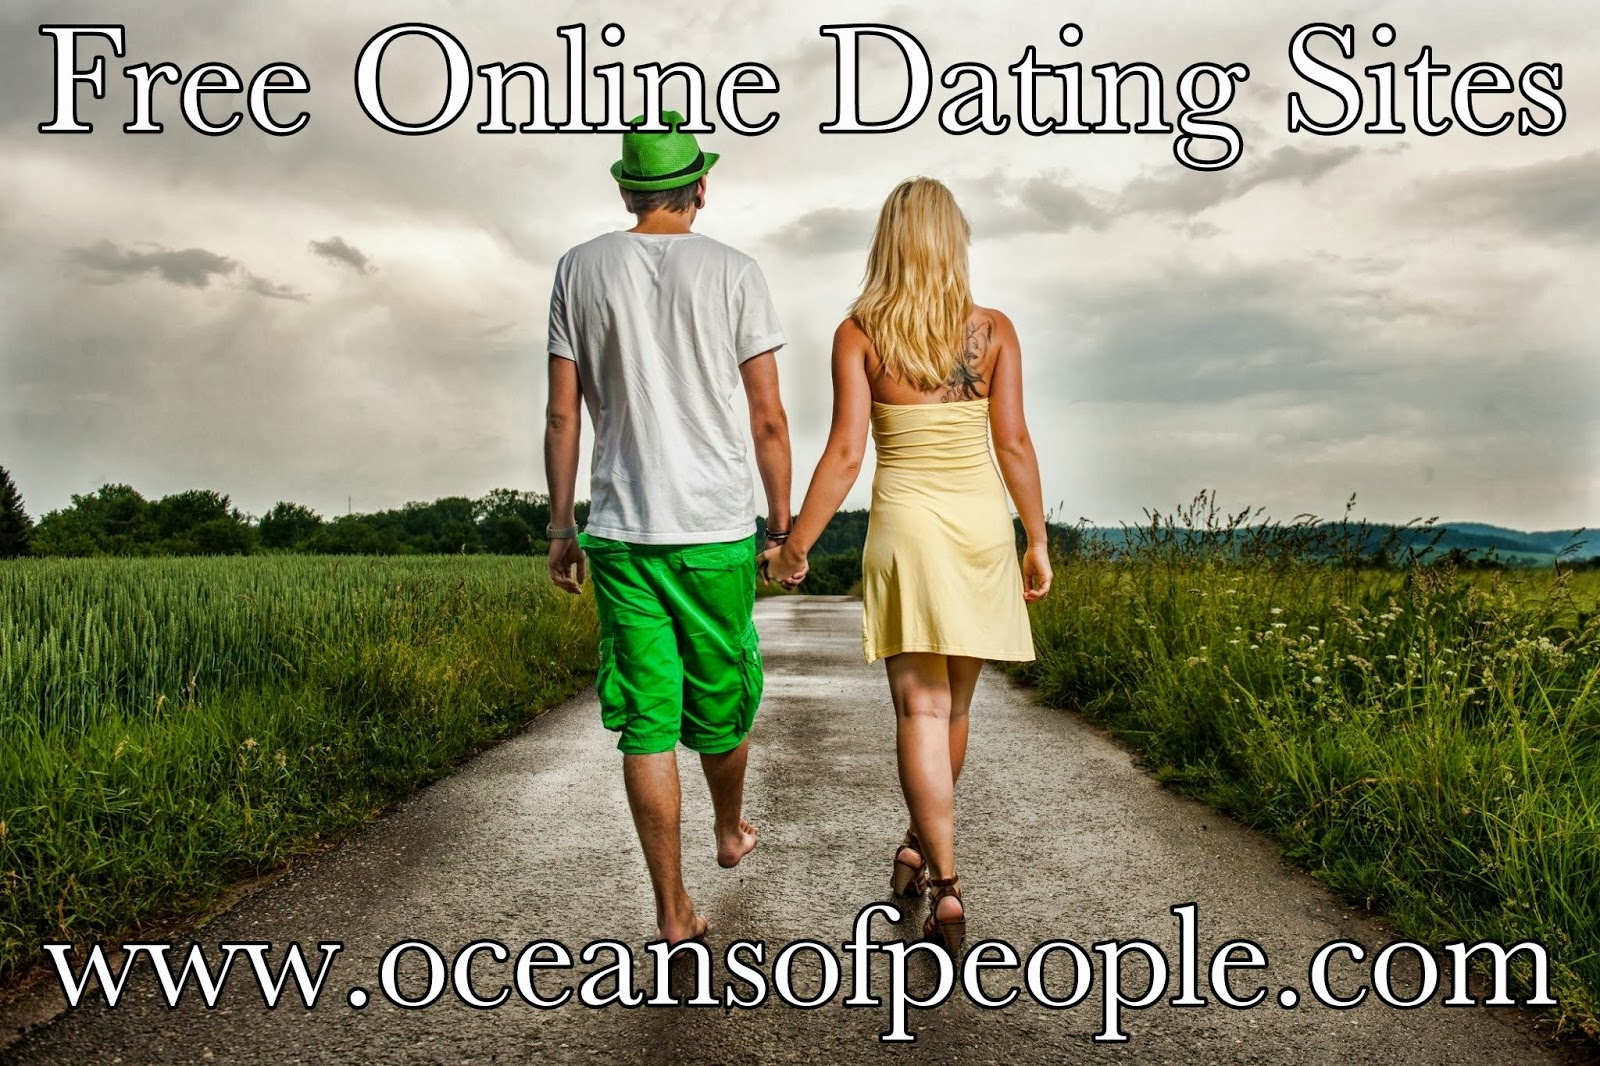 Gehobene online-dating-sites